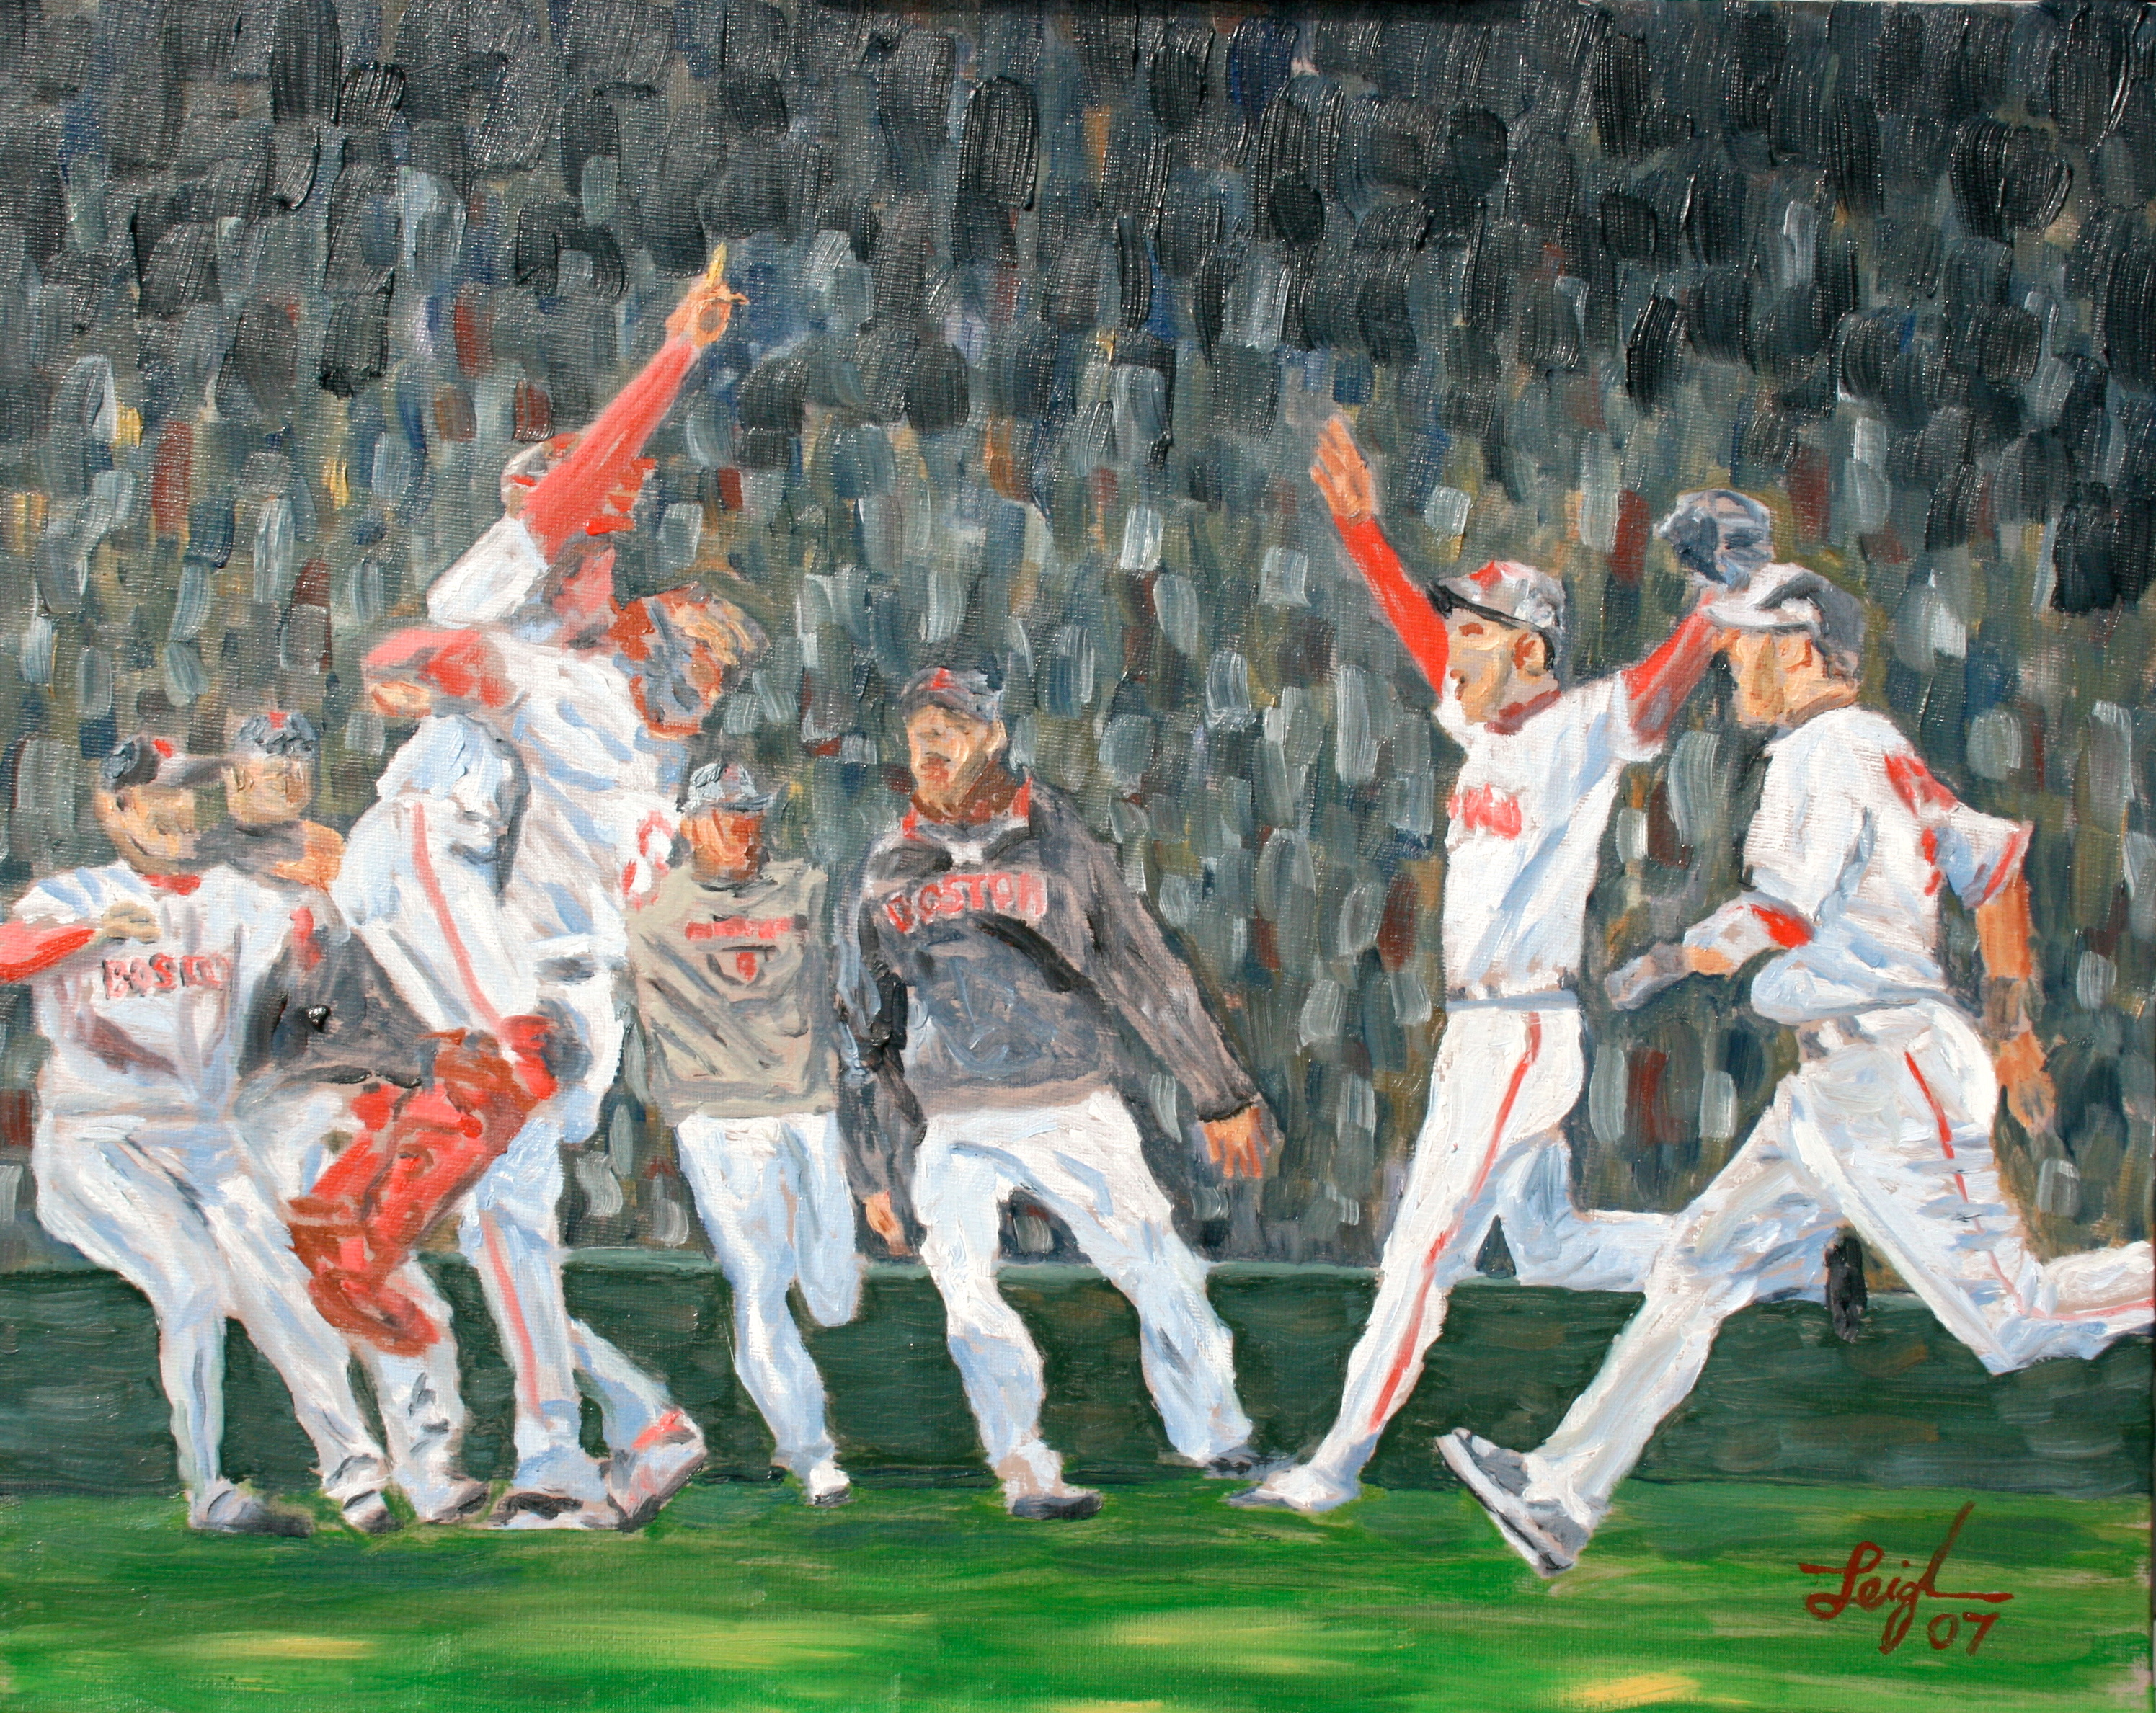 The Red Sox Win the World Series  ~   Margo Maine, West Hartford, CT 2007  •  20 x 16